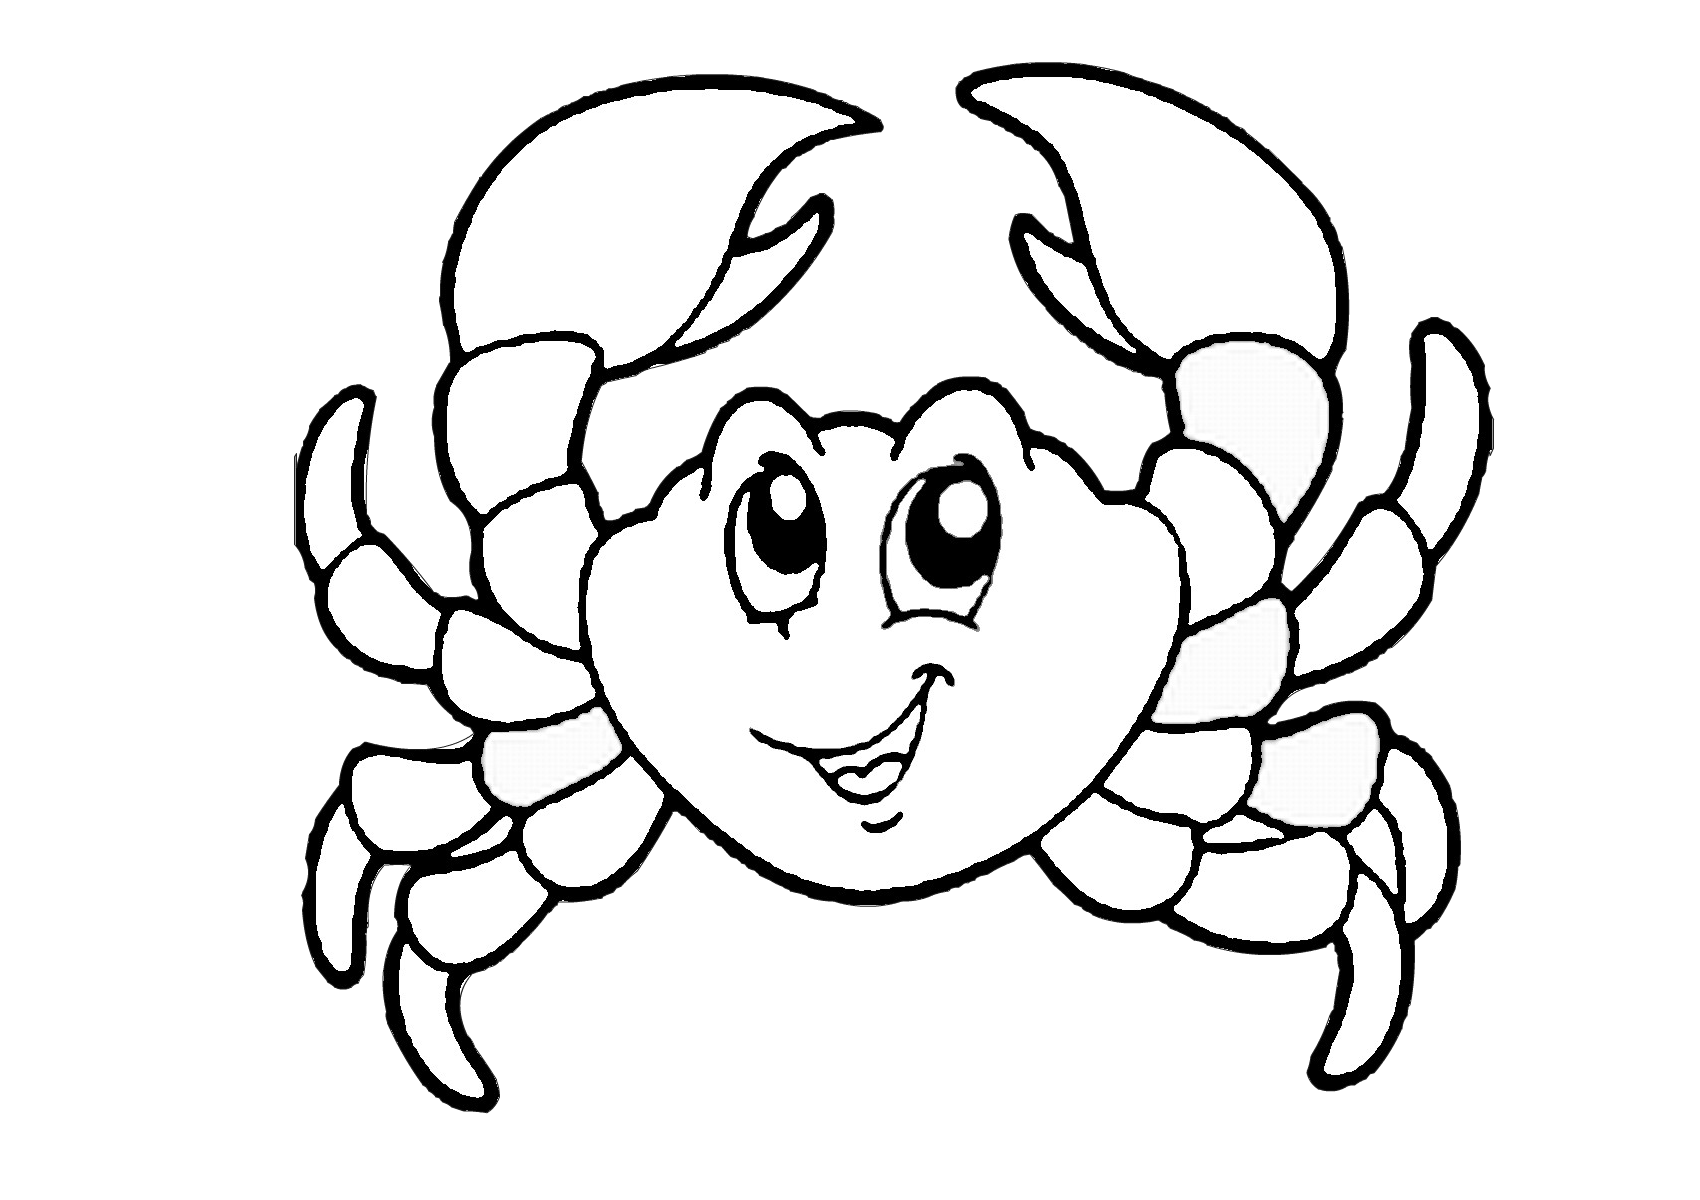 Printable Easy Cartoon Crab Coloring Pages for Preschool Kids